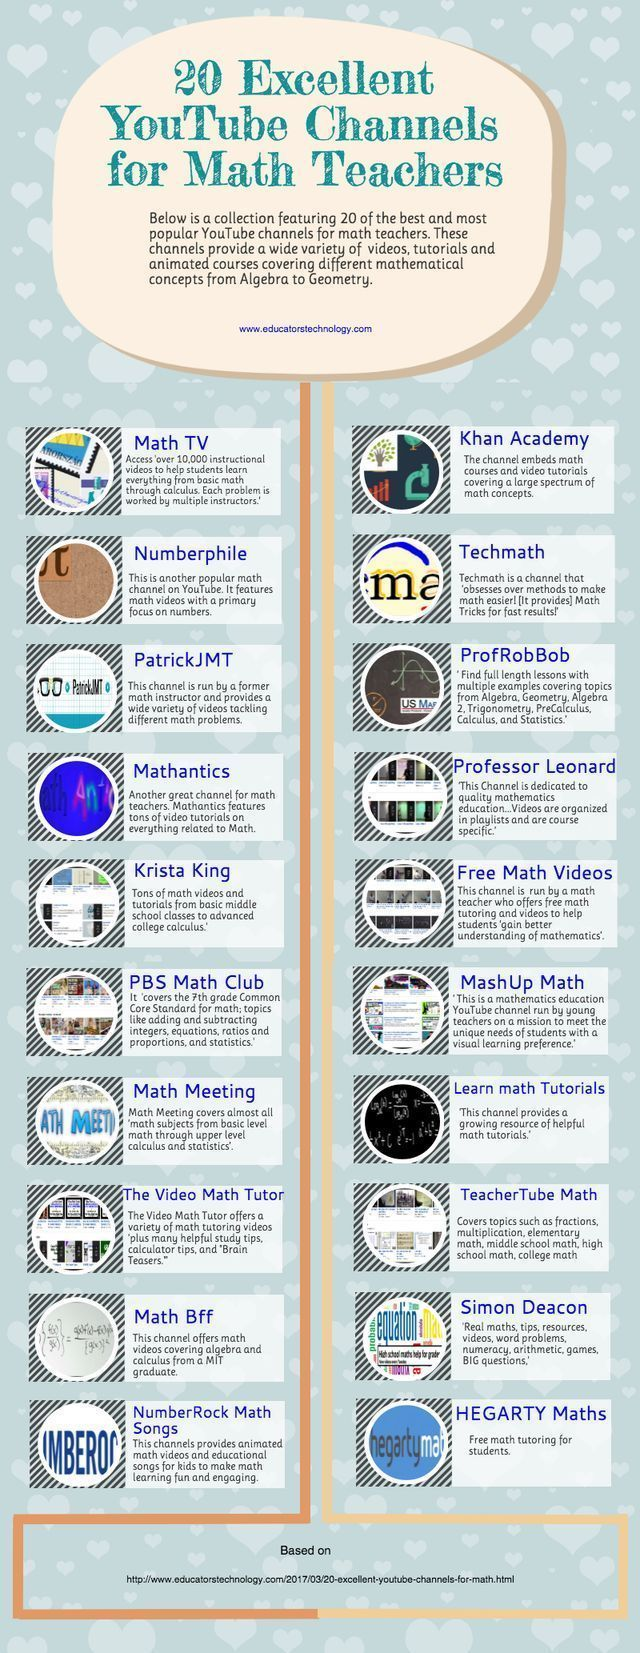 An Interesting Infographic Featuring 20 of The Best YouTube Channels for Math Teachers #mathlessonsonline #studymathonine